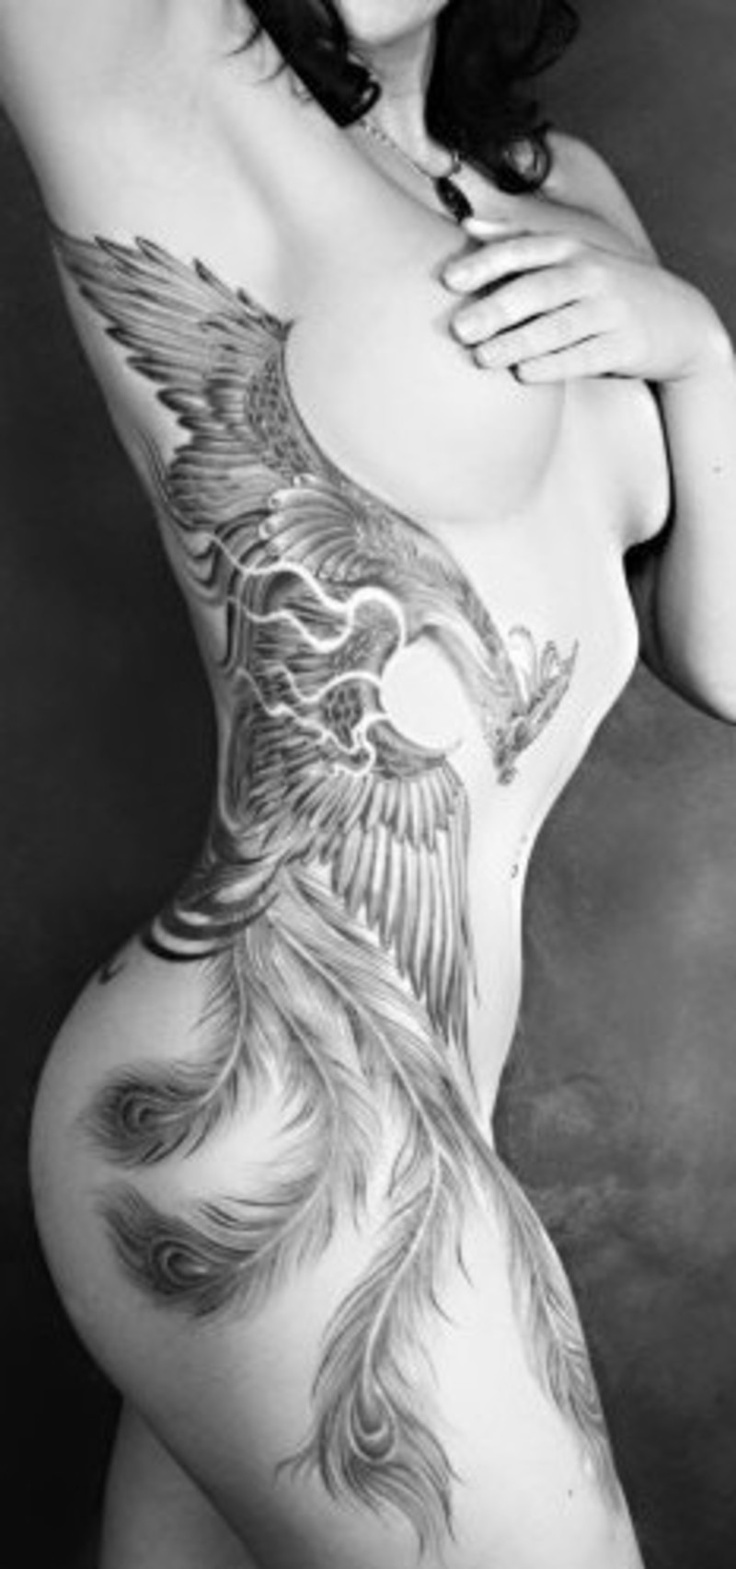 Girl with Phoenix Tattoo